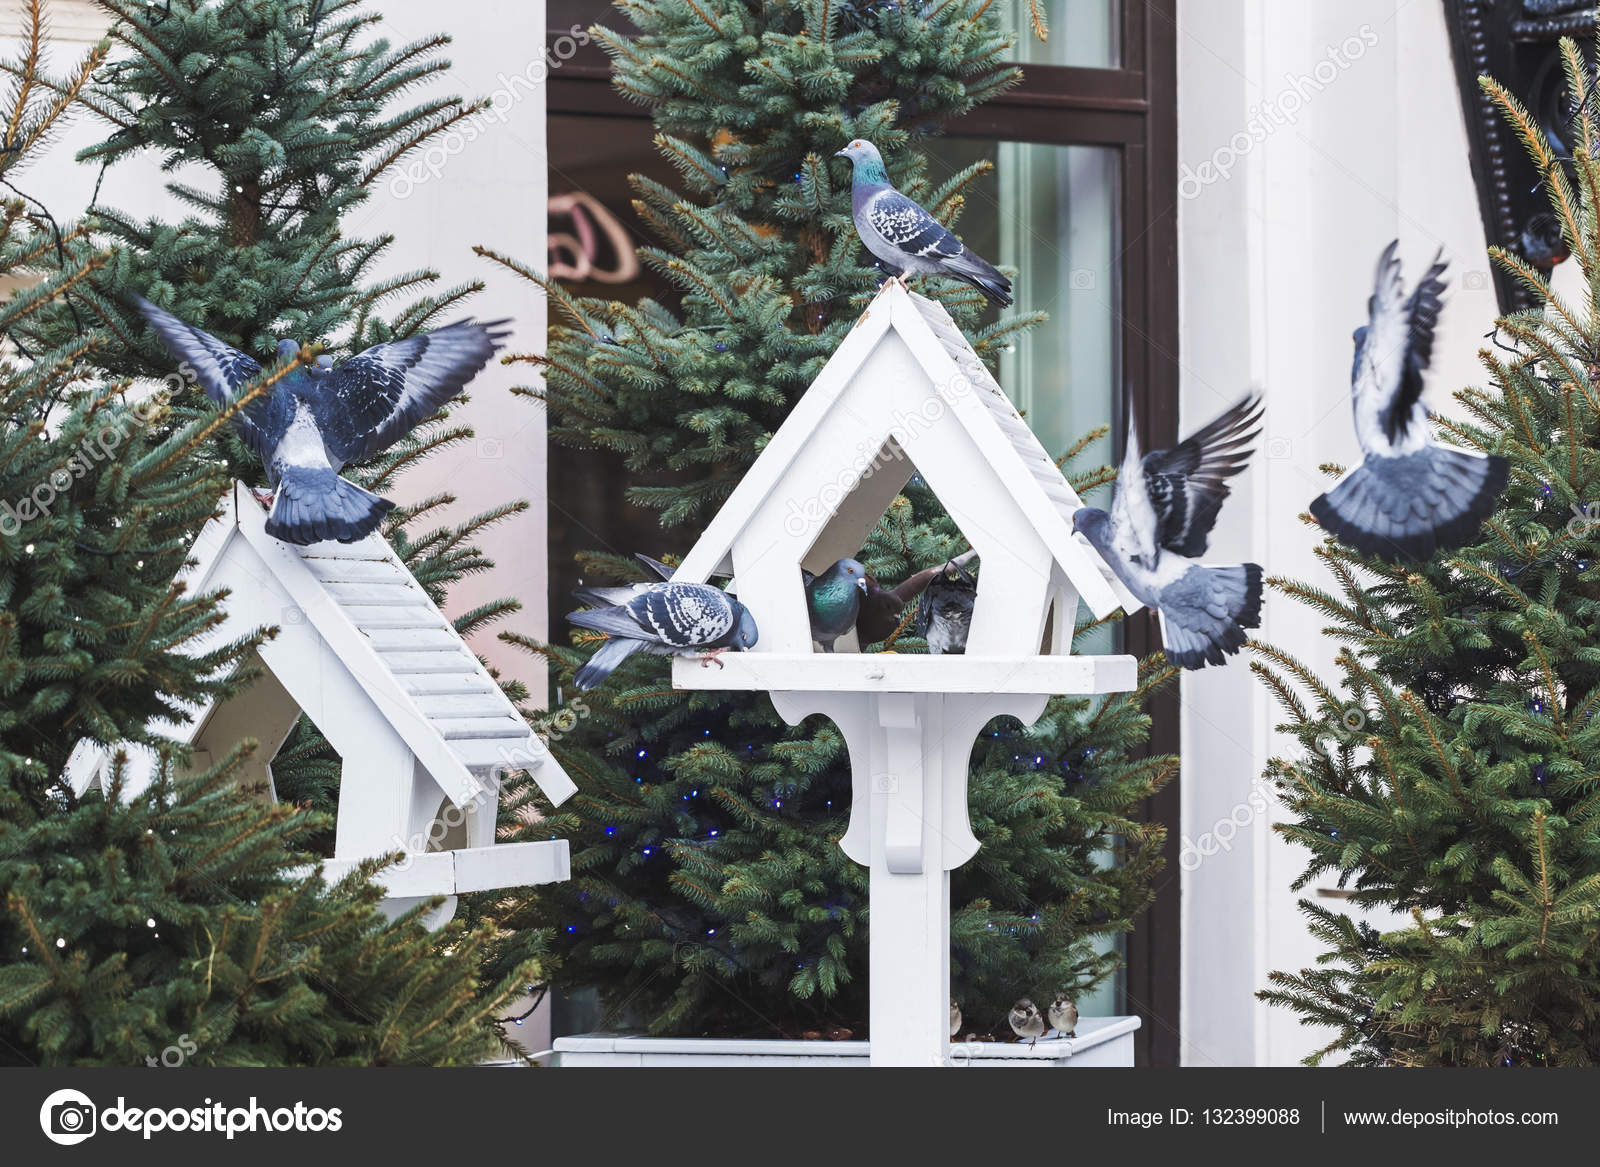 lovely outdoor bird feeders in fur trees decorations for christmas photo by olegbreslavtsev - Outdoor Christmas Tree Decorations For Birds